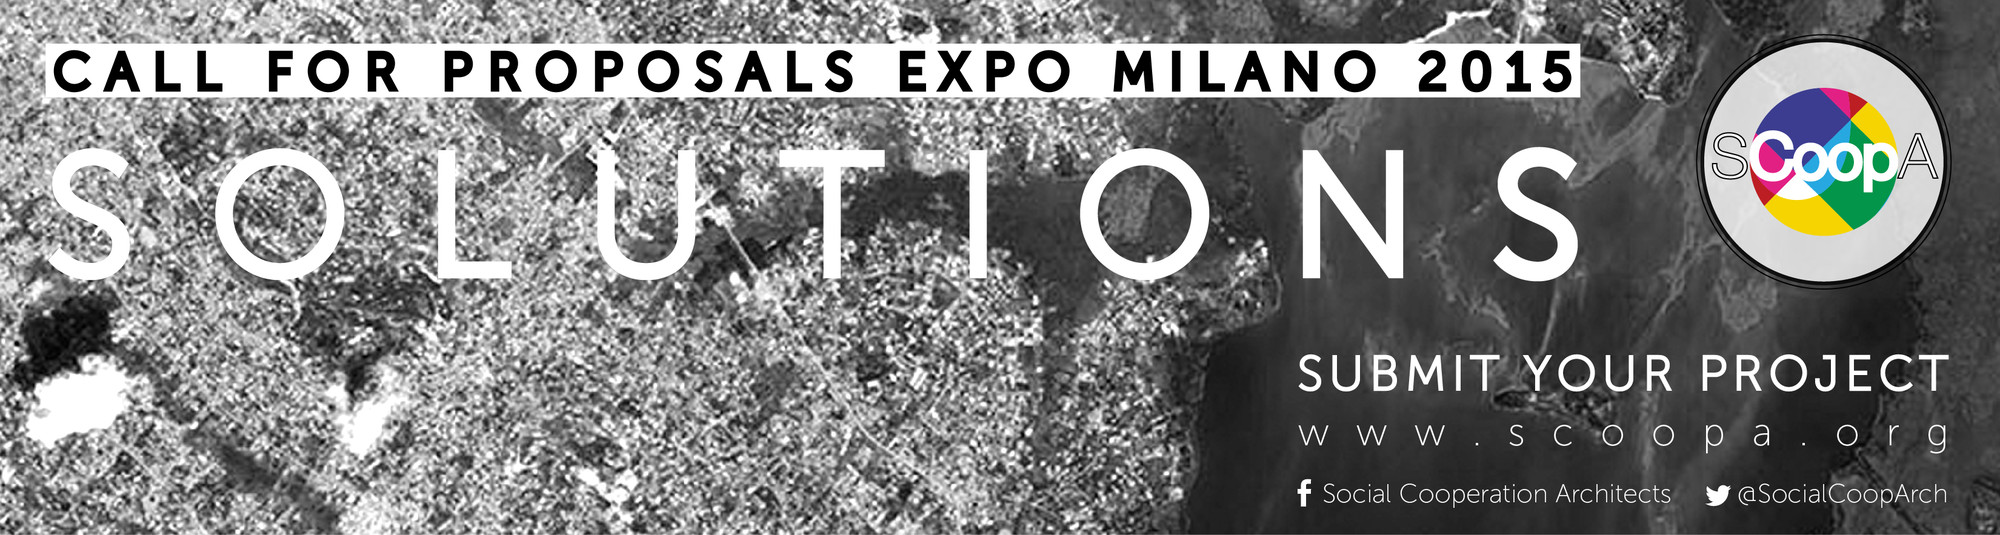 Call for Proposals: Exhibit Your Work at Milan Expo 2015, Courtesy of Social Cooperation Architects (SCoopA)